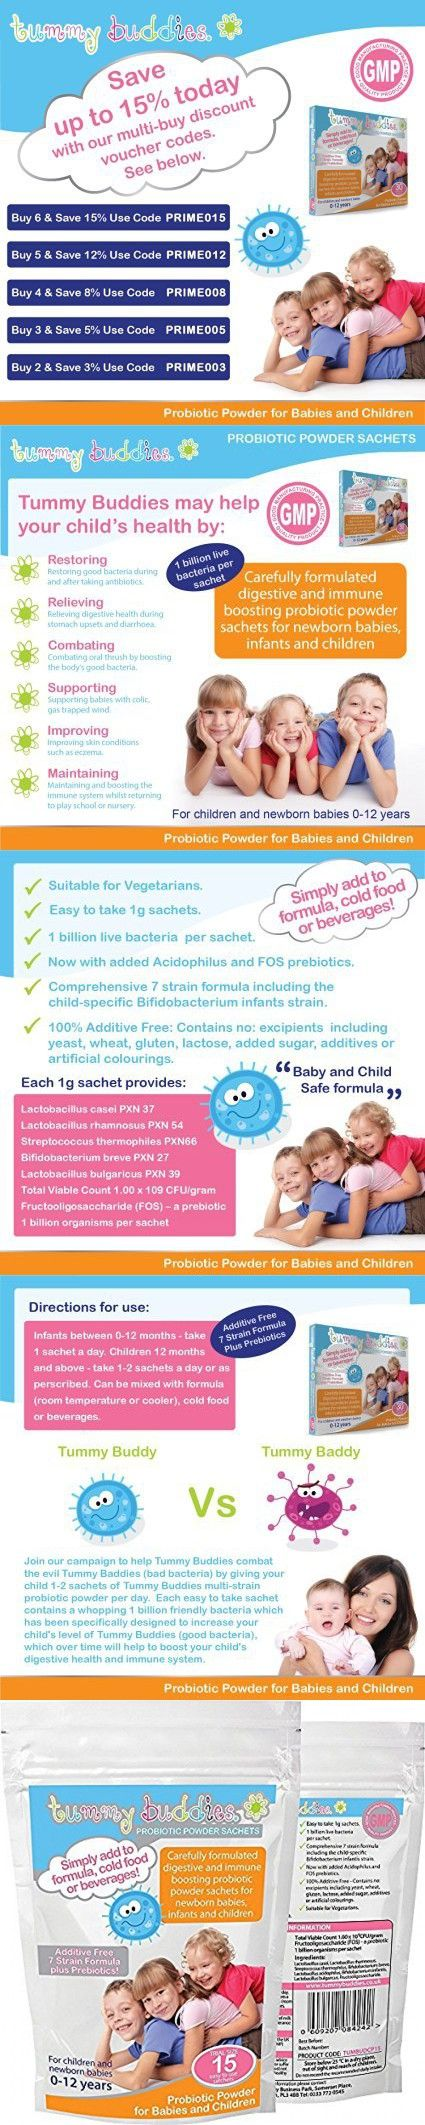 Kids Probiotic Powder - 1 Billion CFU - Mix With Cold Food or Drinks - Best Quality Child & Baby Safe 7 Strain Formula with Lactobacillus Acidophilus & Prebiotics - Sugar & Additive Free - 15 Packets